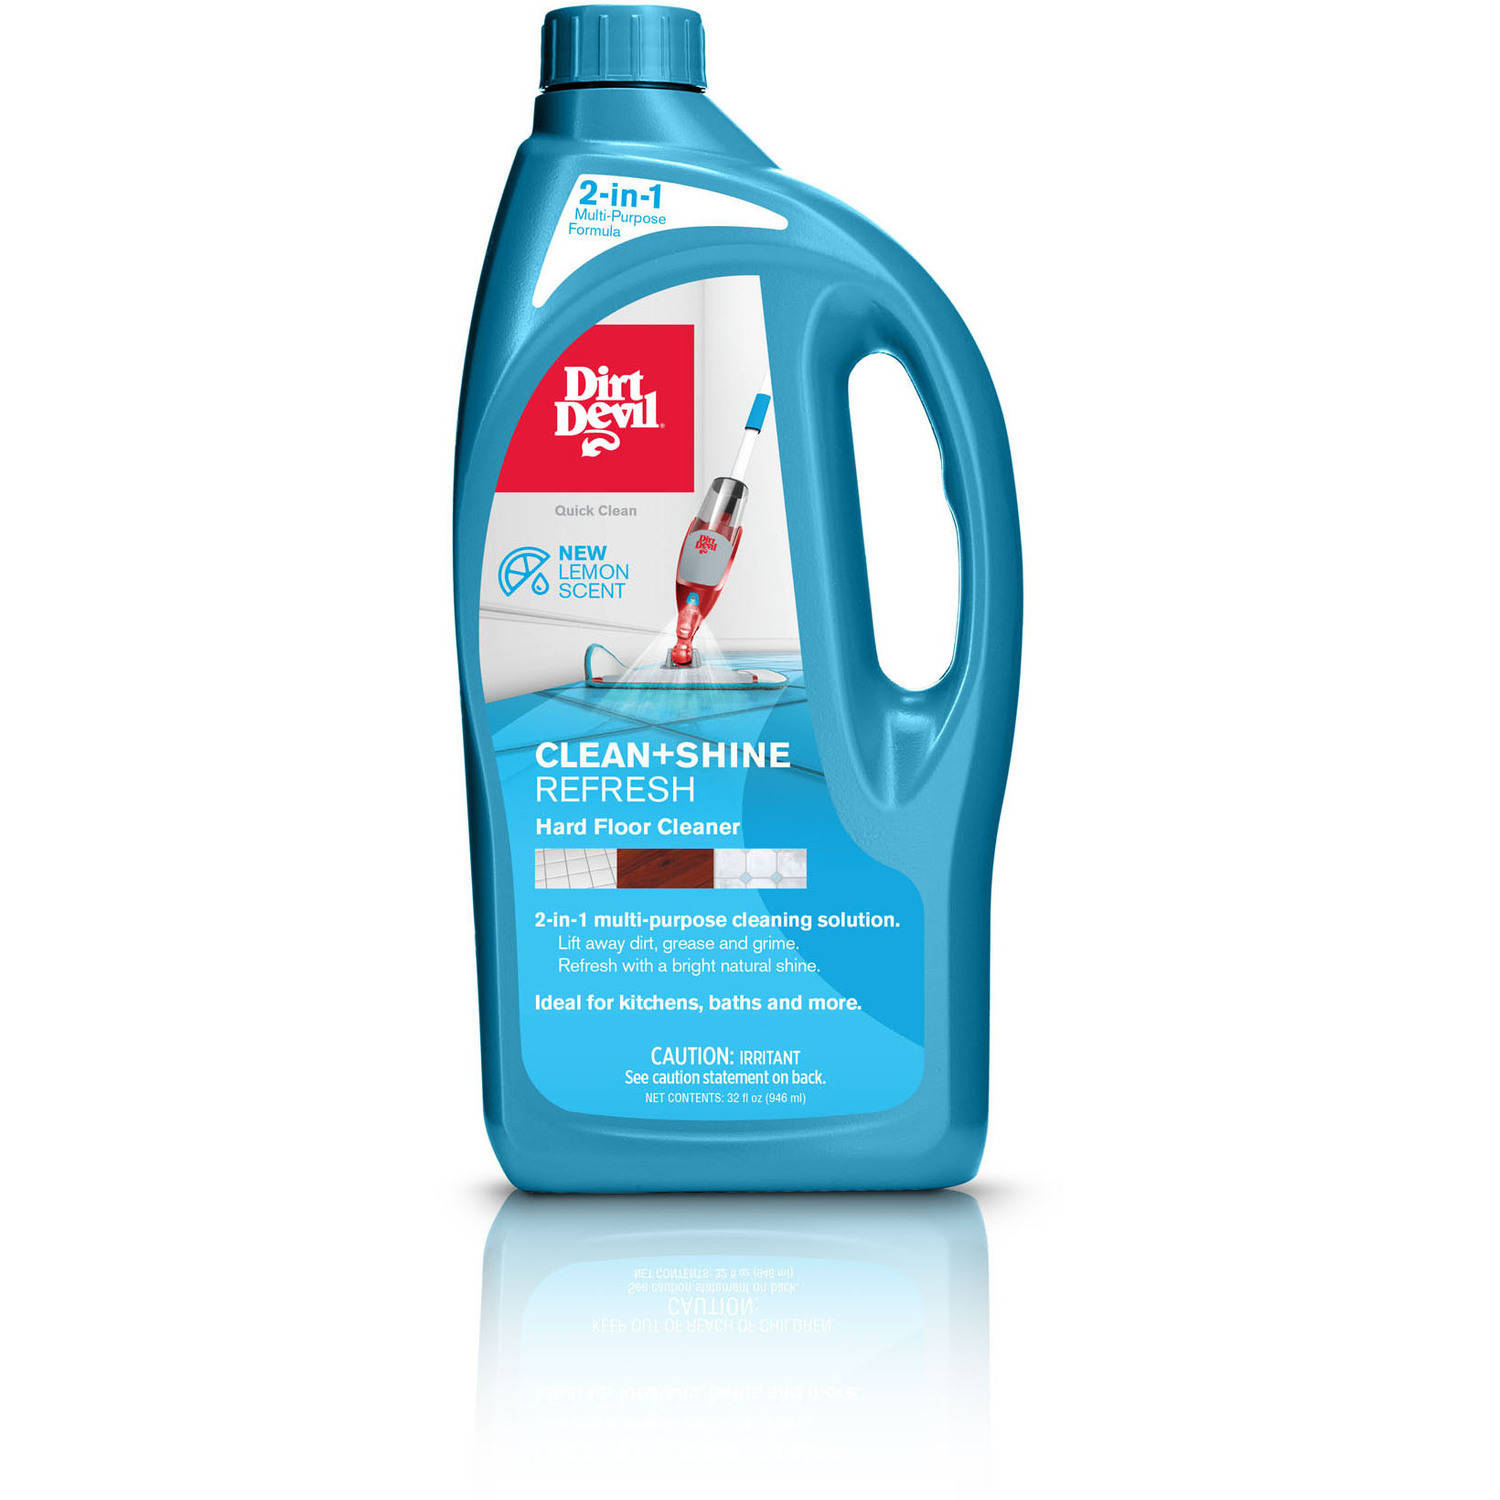 Dirt Devil Clean+Shine Refresh Hard Floor Cleaning Solution, AD30040